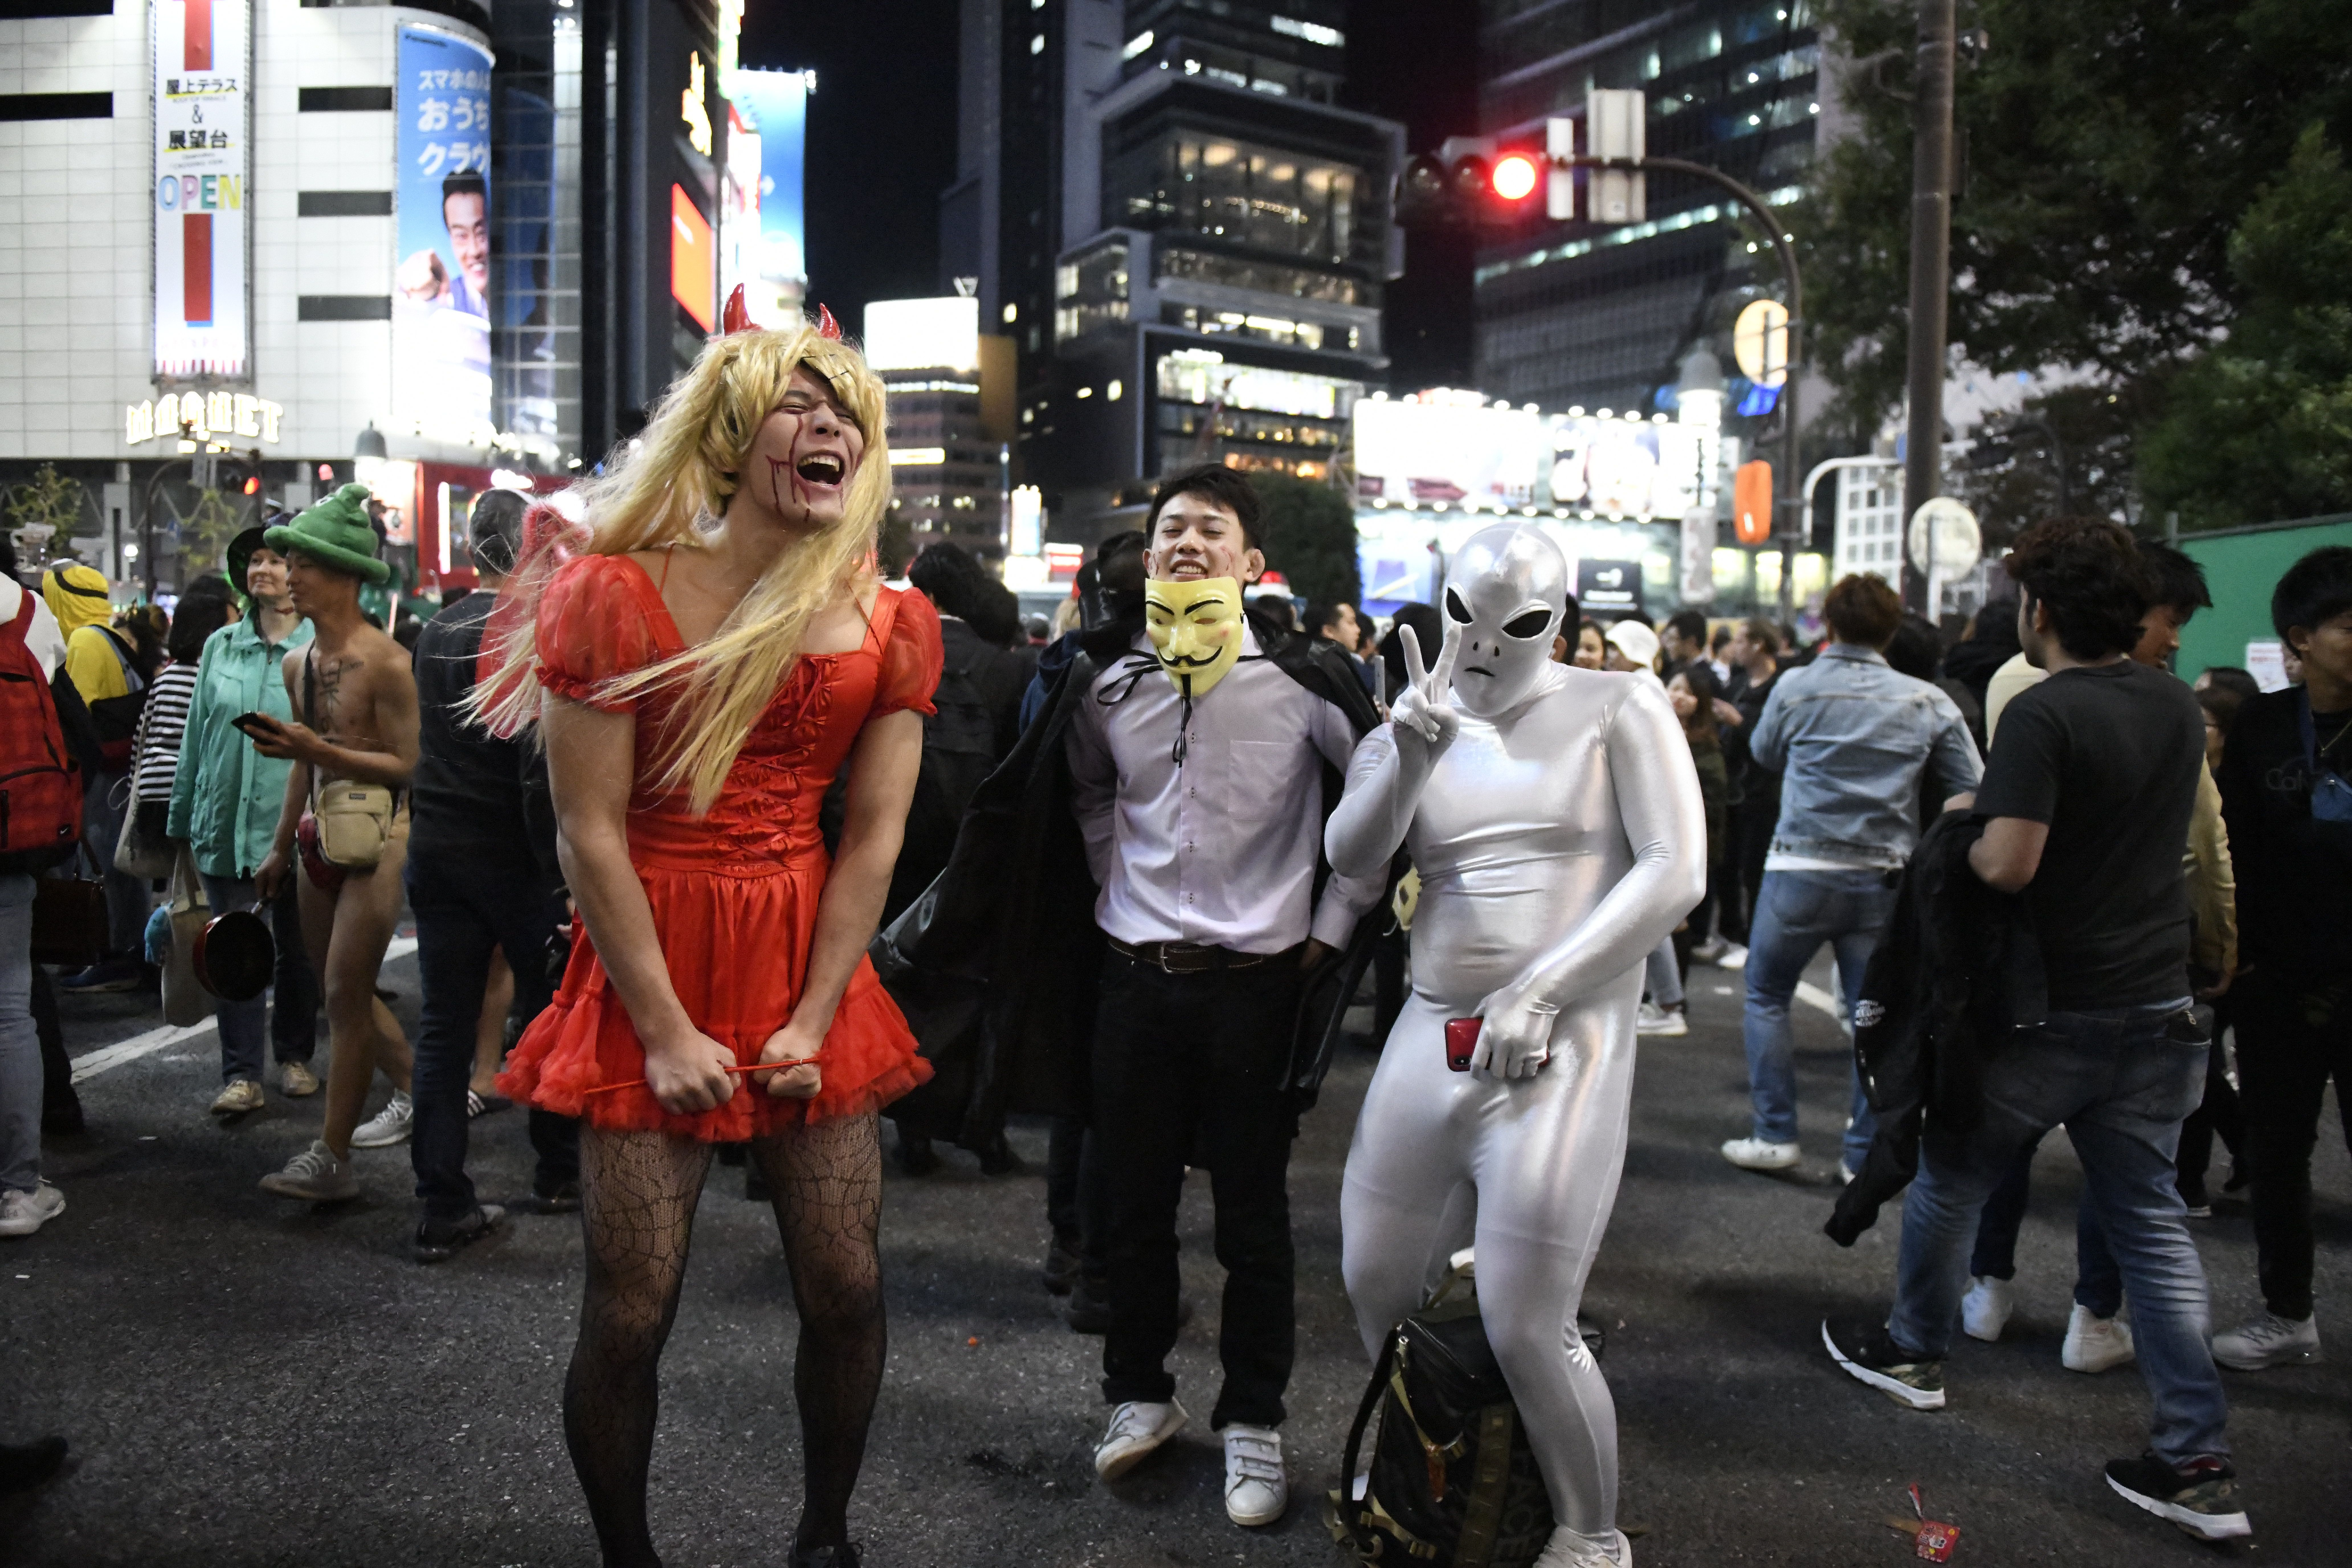 Revellers dressed in Halloween costumes gather at Shibuya crossing at Halloween night on October 31, 2018, Tokyo, Japan.  (Photo by Richard Atrero de Guzman/NurPhoto via Getty Images)